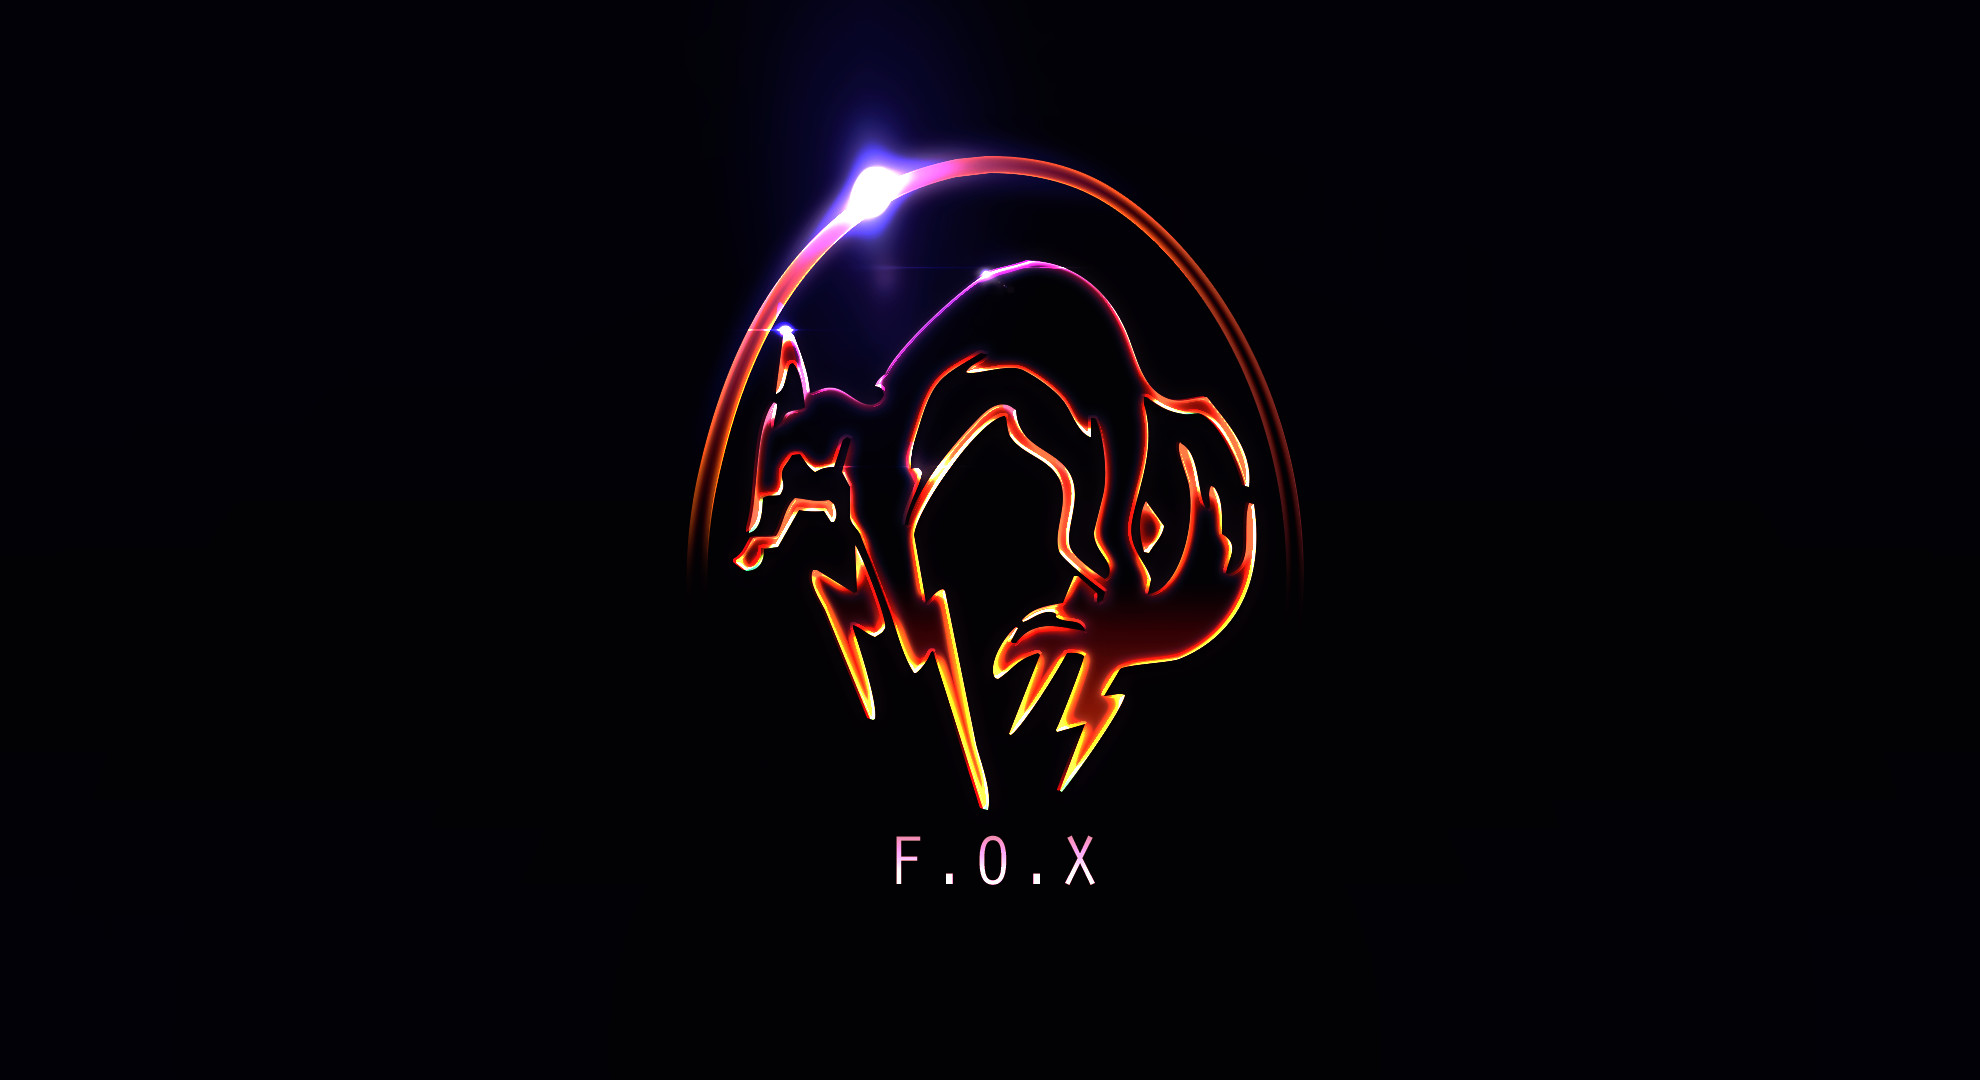 Res: 1980x1080, HD Foxhound Pictures › Download Free - 228826139